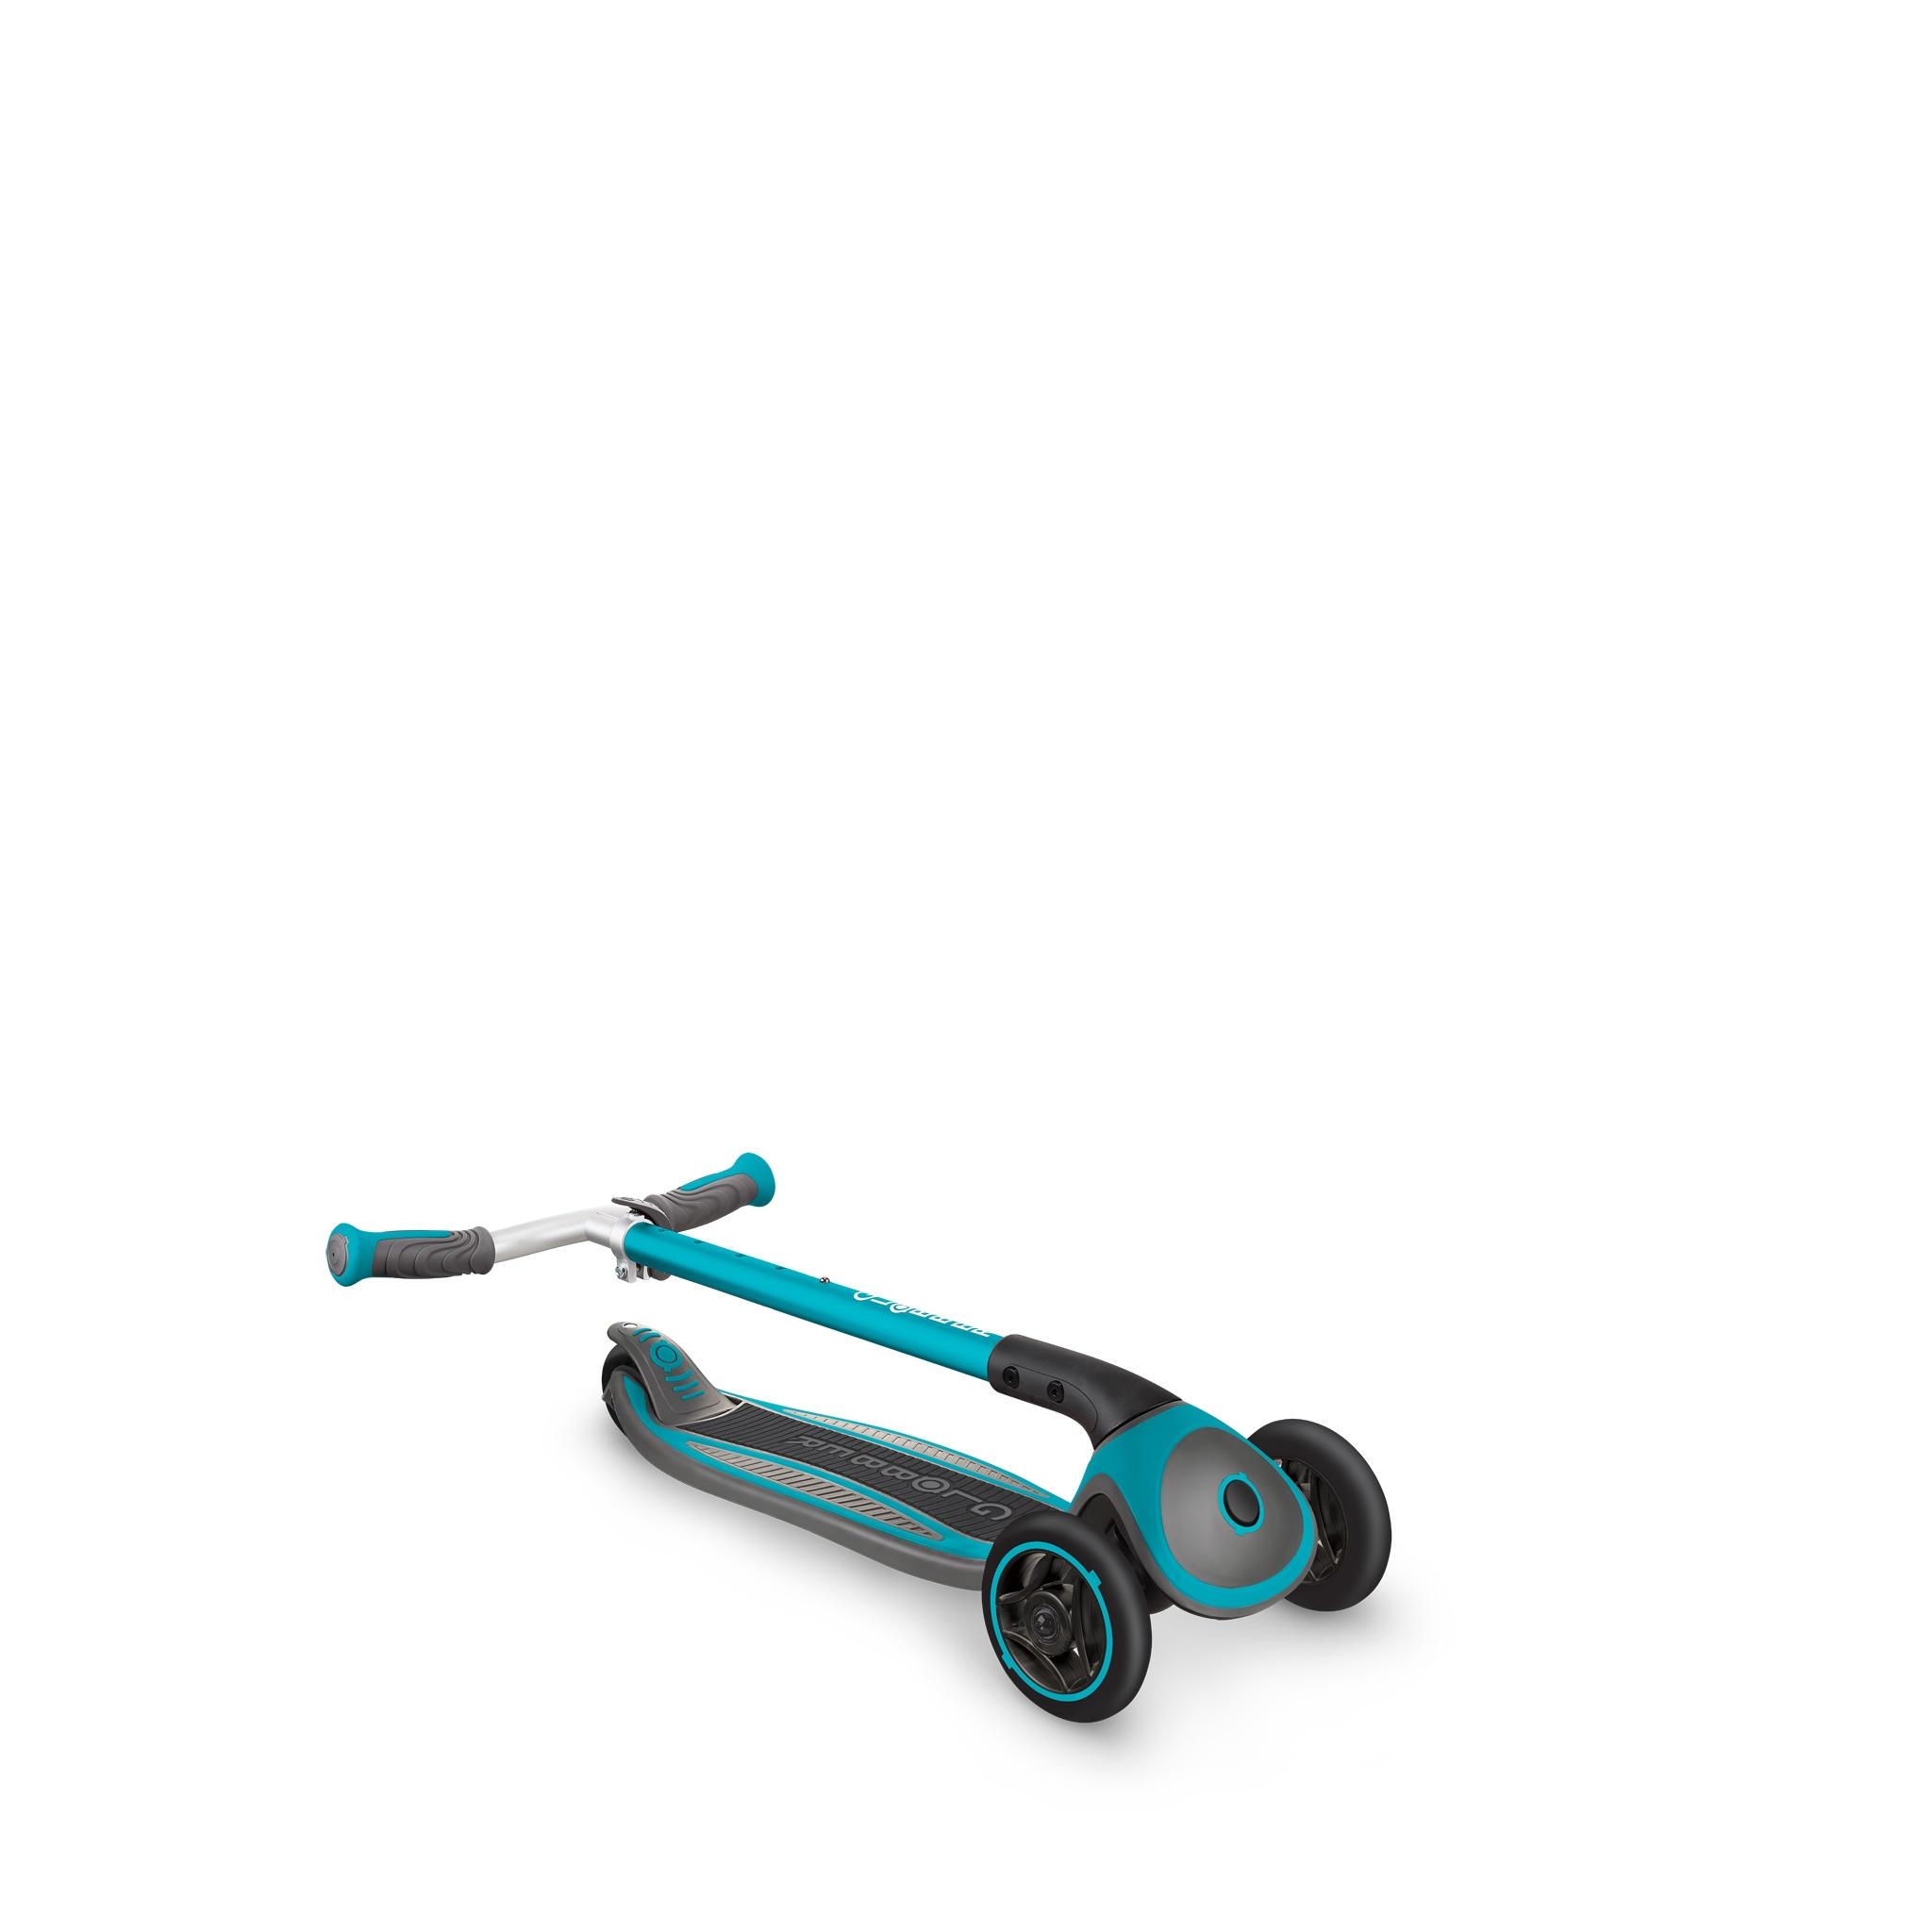 Globber-MASTER-convenient-foldable-3-wheel-scooter-for-kids-with-patented-folding-system_teal